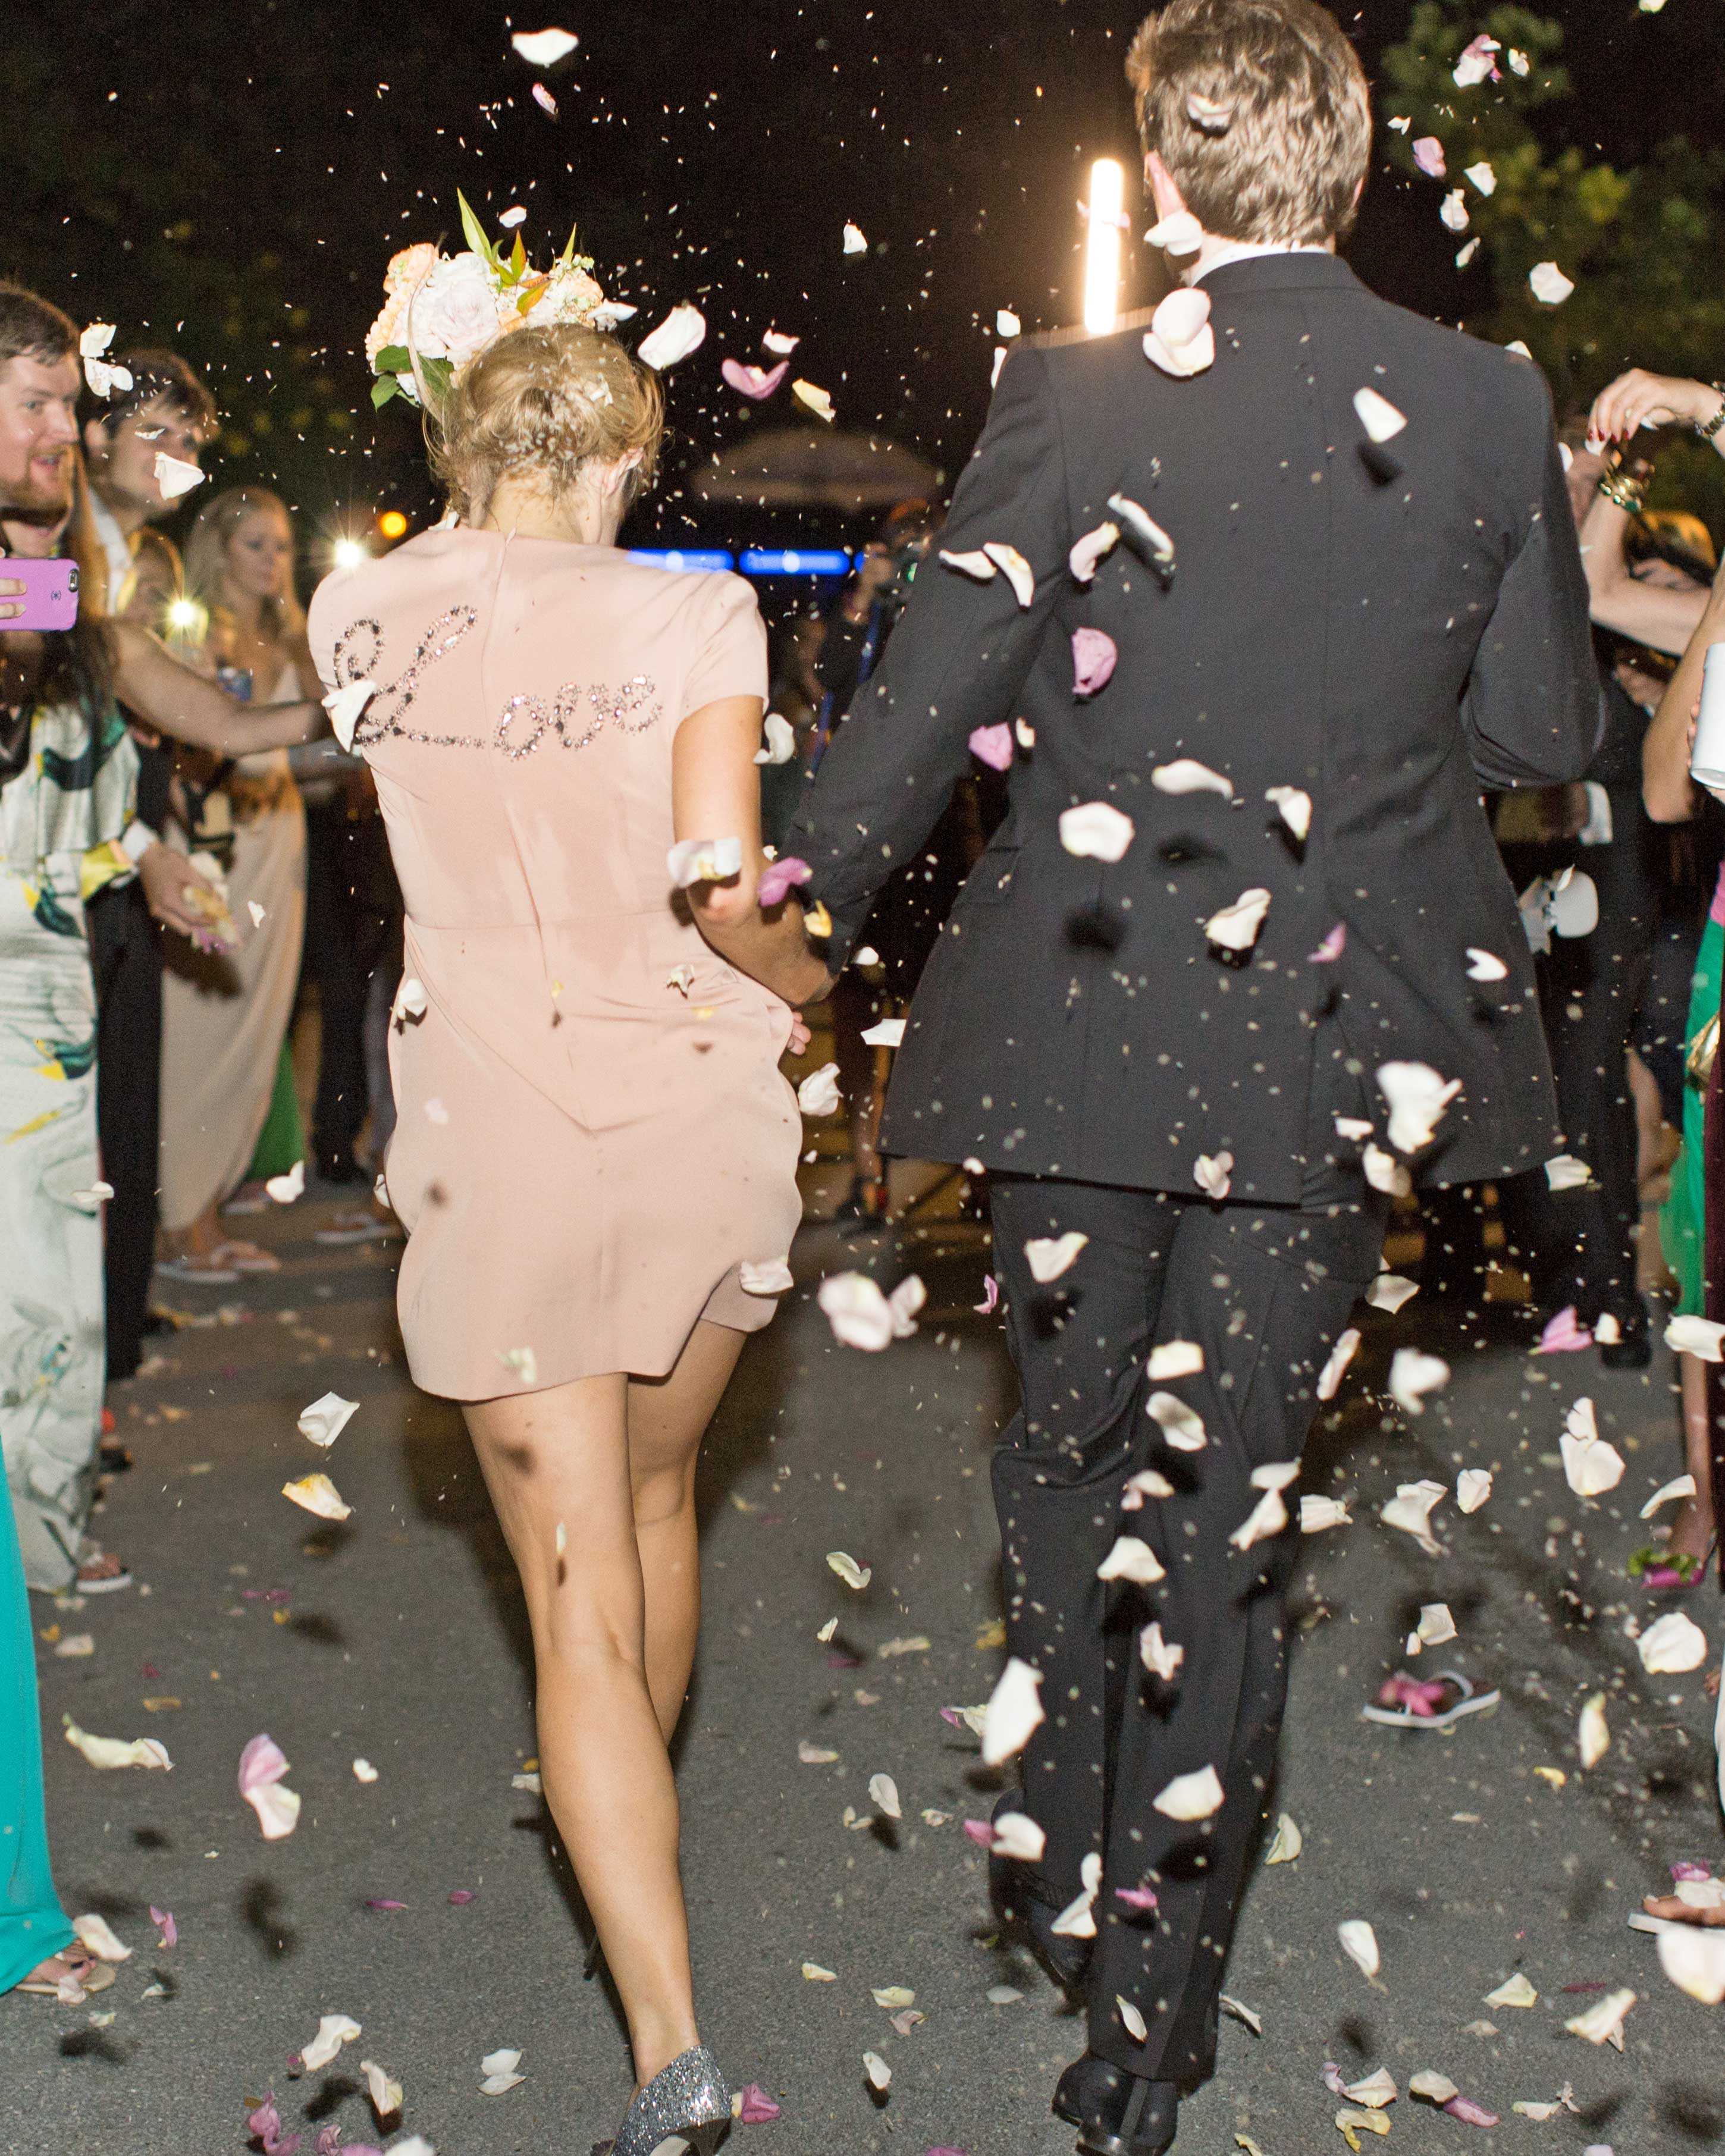 natalie jamey wedding sendoff confetti